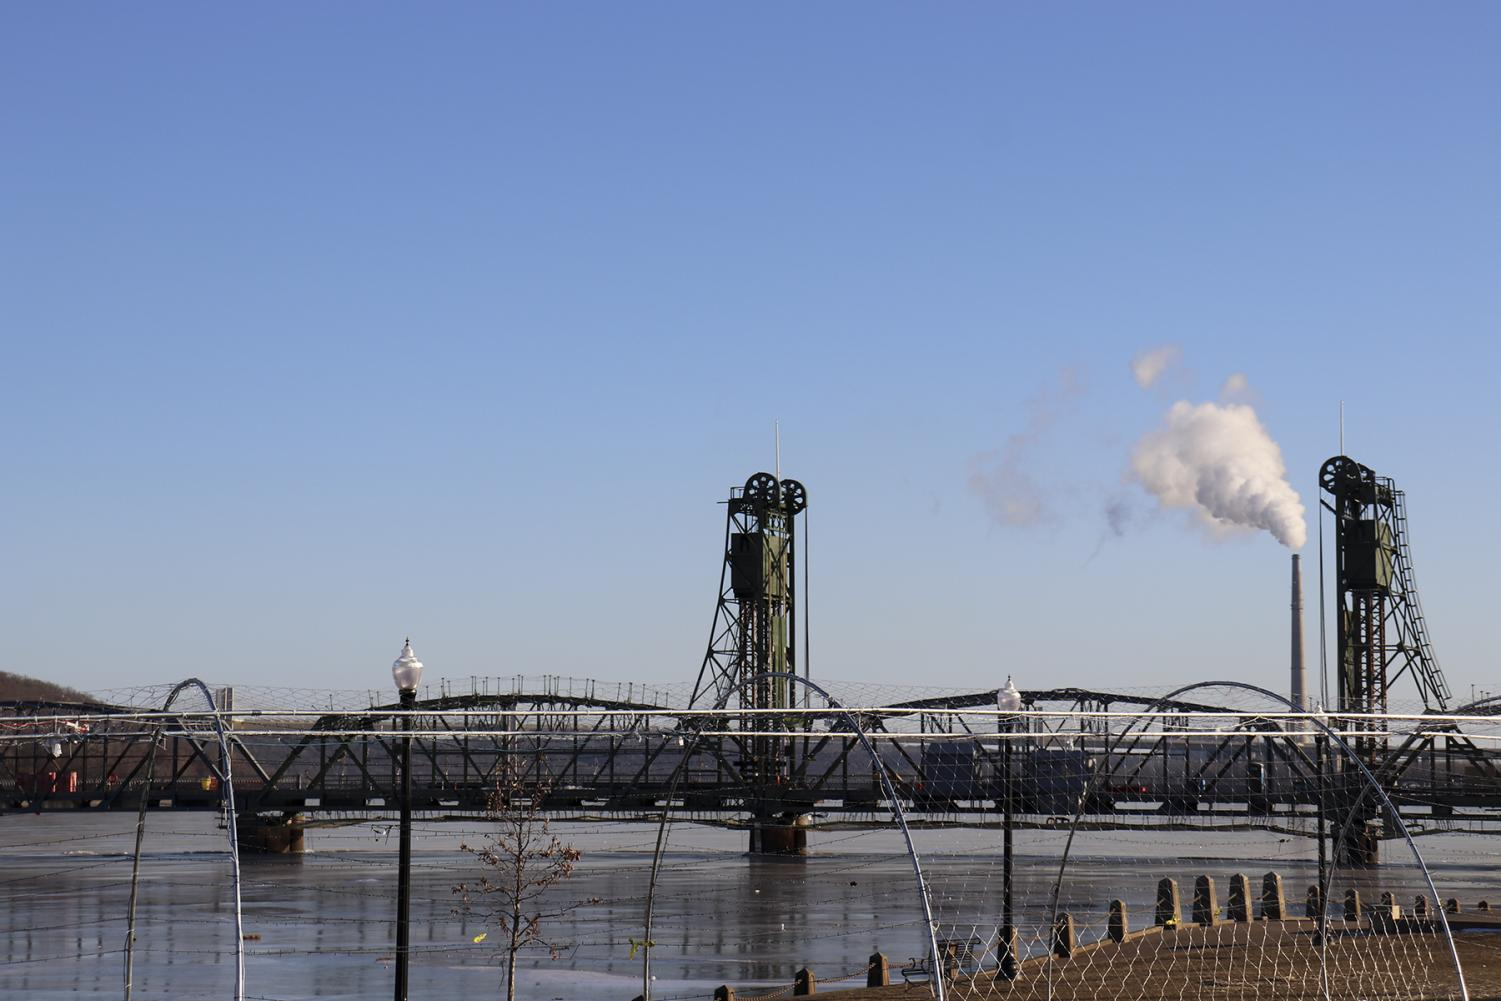 Stillwater+is+home+to+the+historic+lift+bridge+that+rests+above+the+slowly+rising+waters+of+the+St.+Croix.